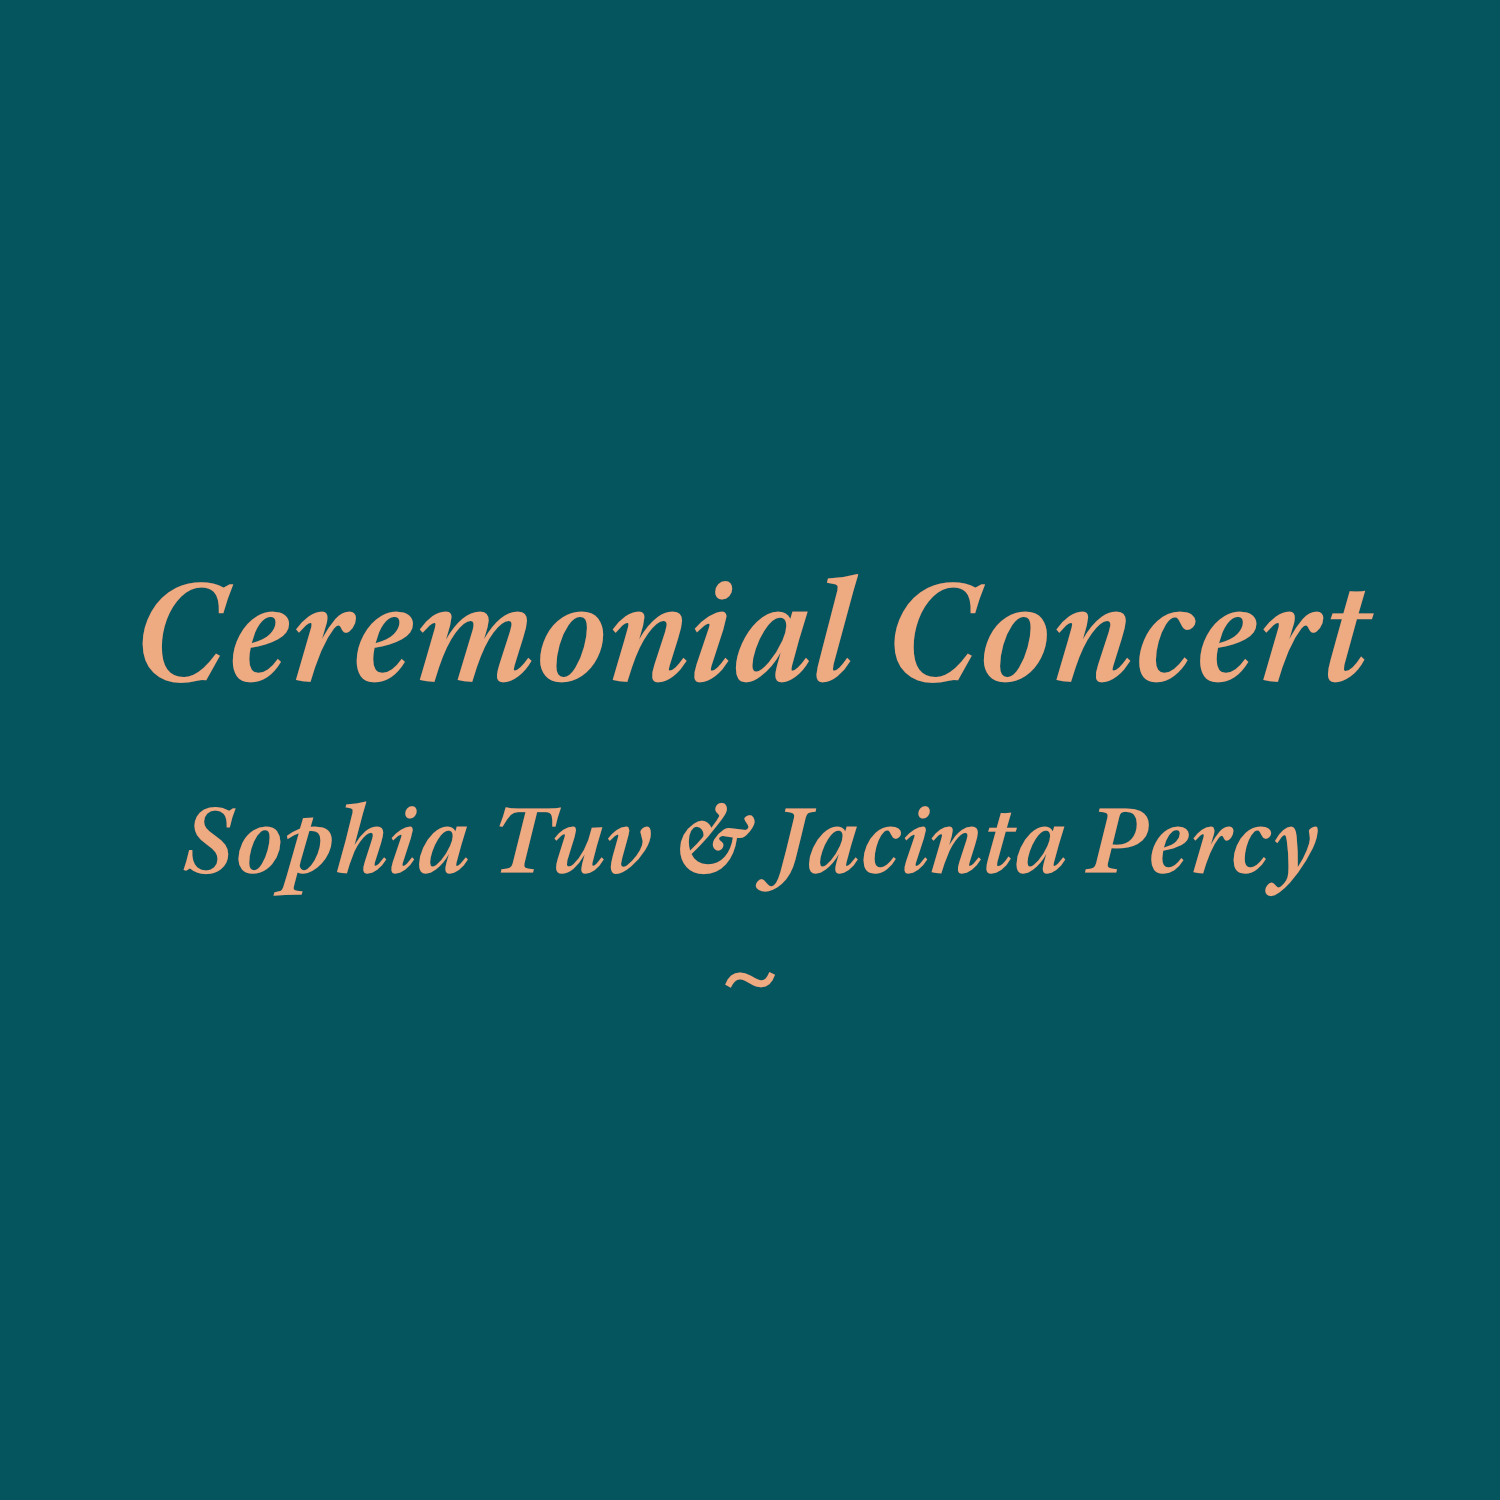 ceremonial_concert_sophia_tuv_and_jacinta_percy.jpg